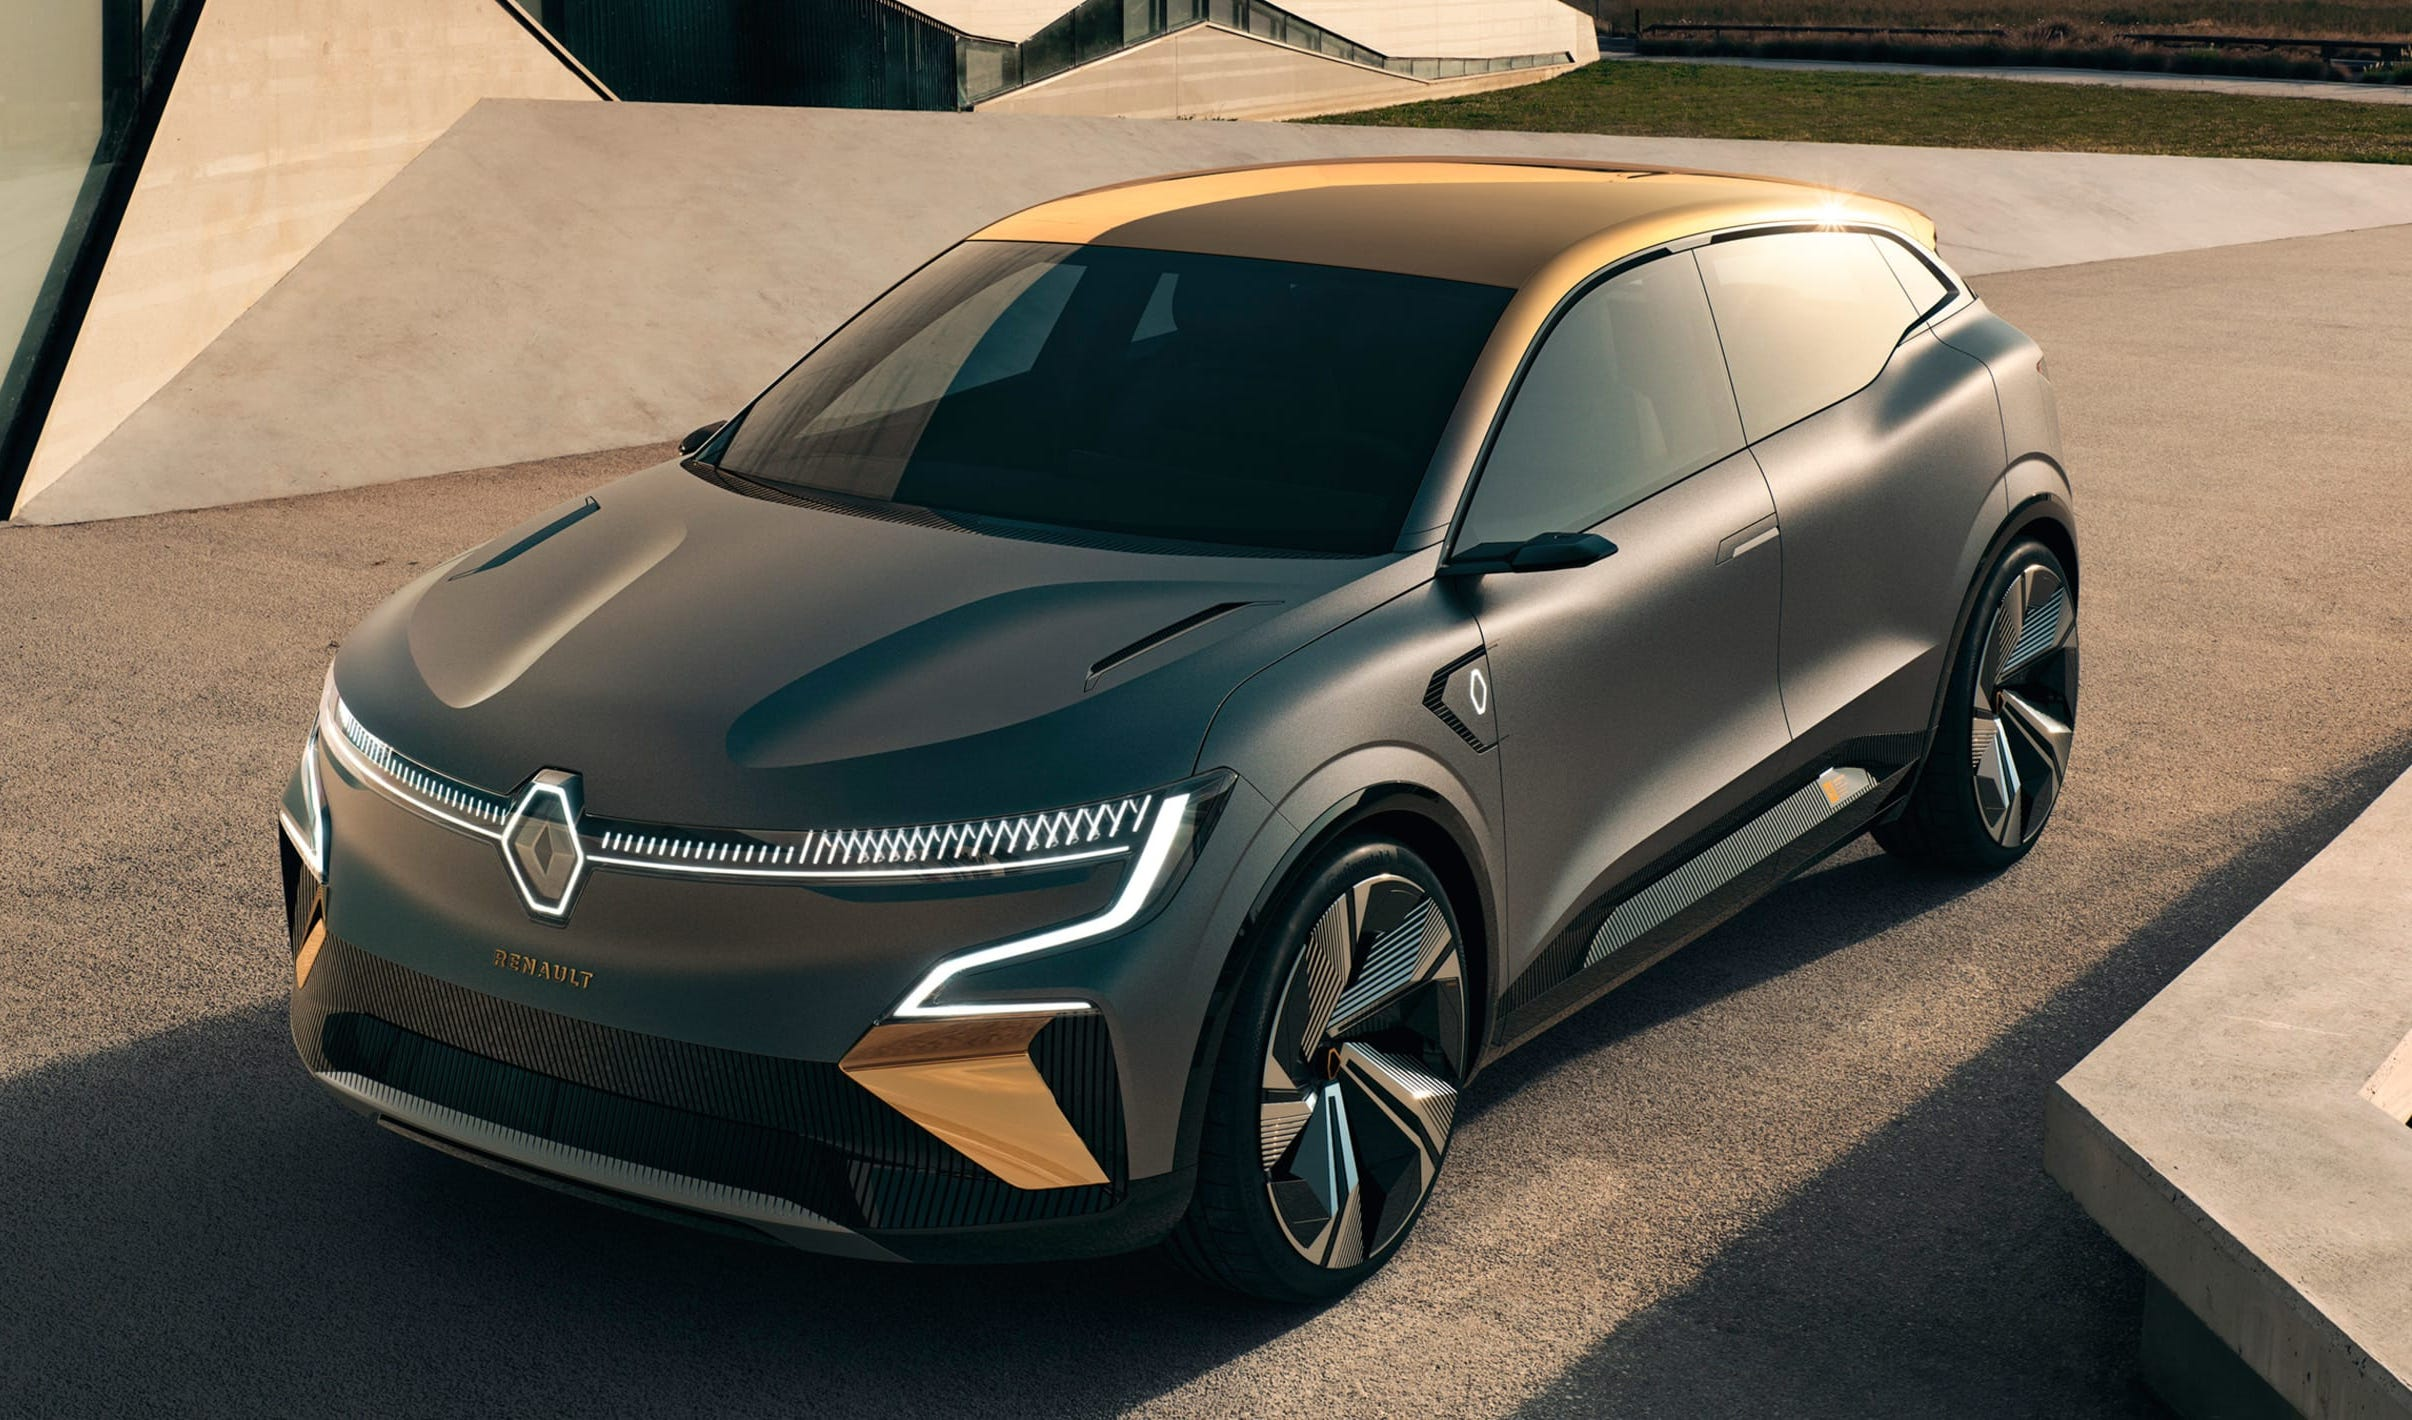 Renault Bolsters Electric Car Lineup After Squandering Lead